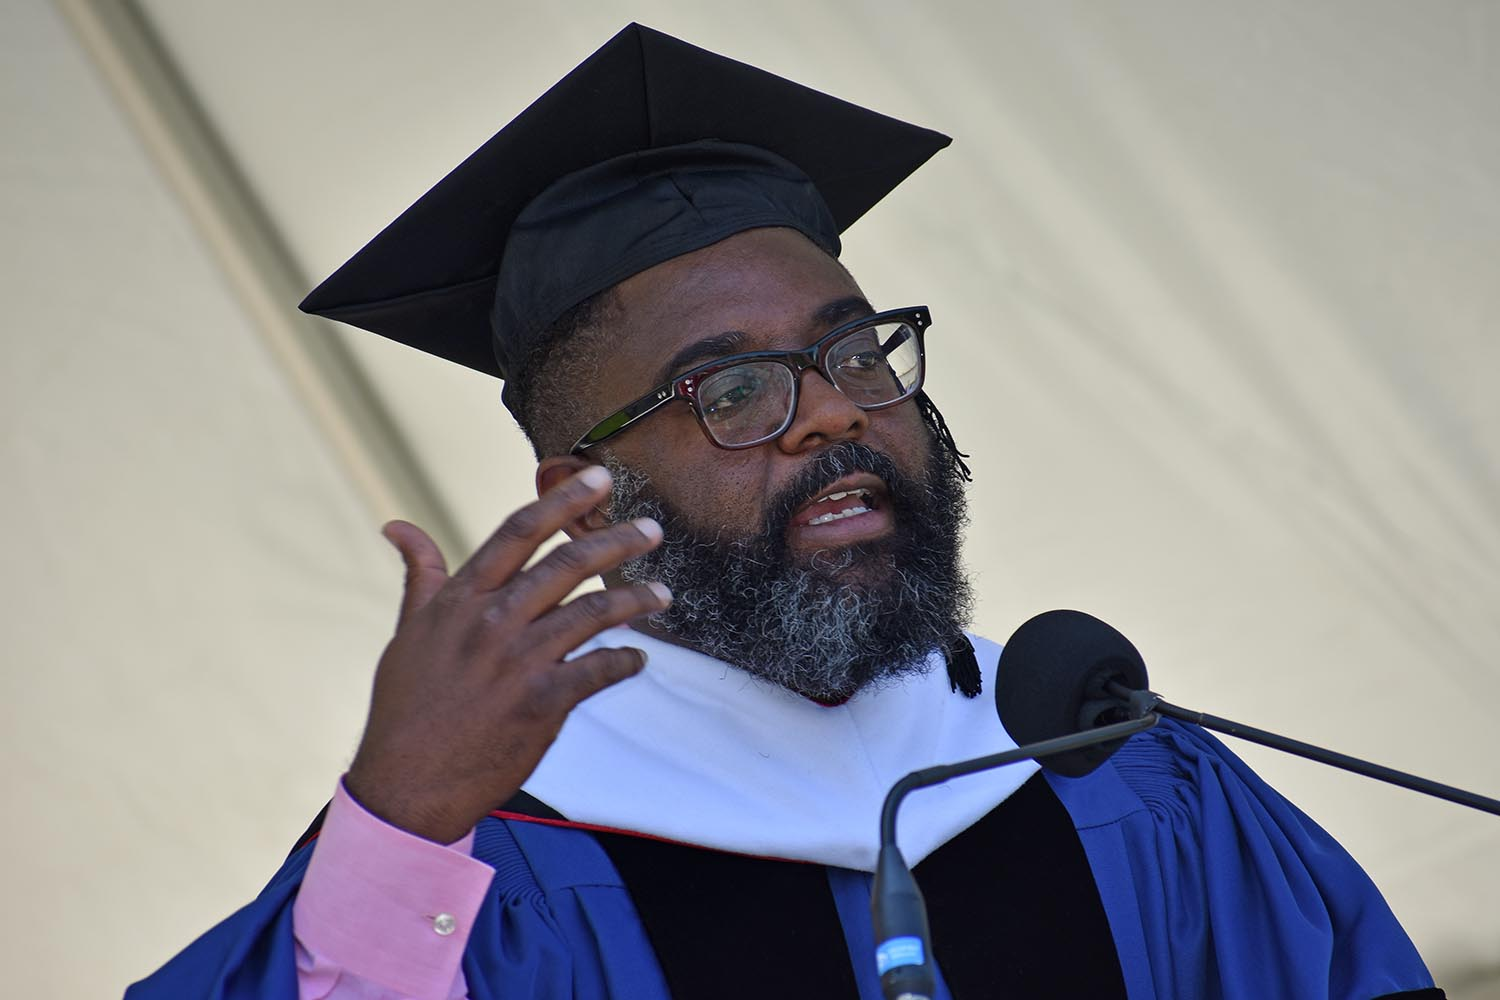 Reginald Dwayne Betts delivered the 2021 Commencement Address during Wesleyan's 189th Commencement Ceremony on May 26.